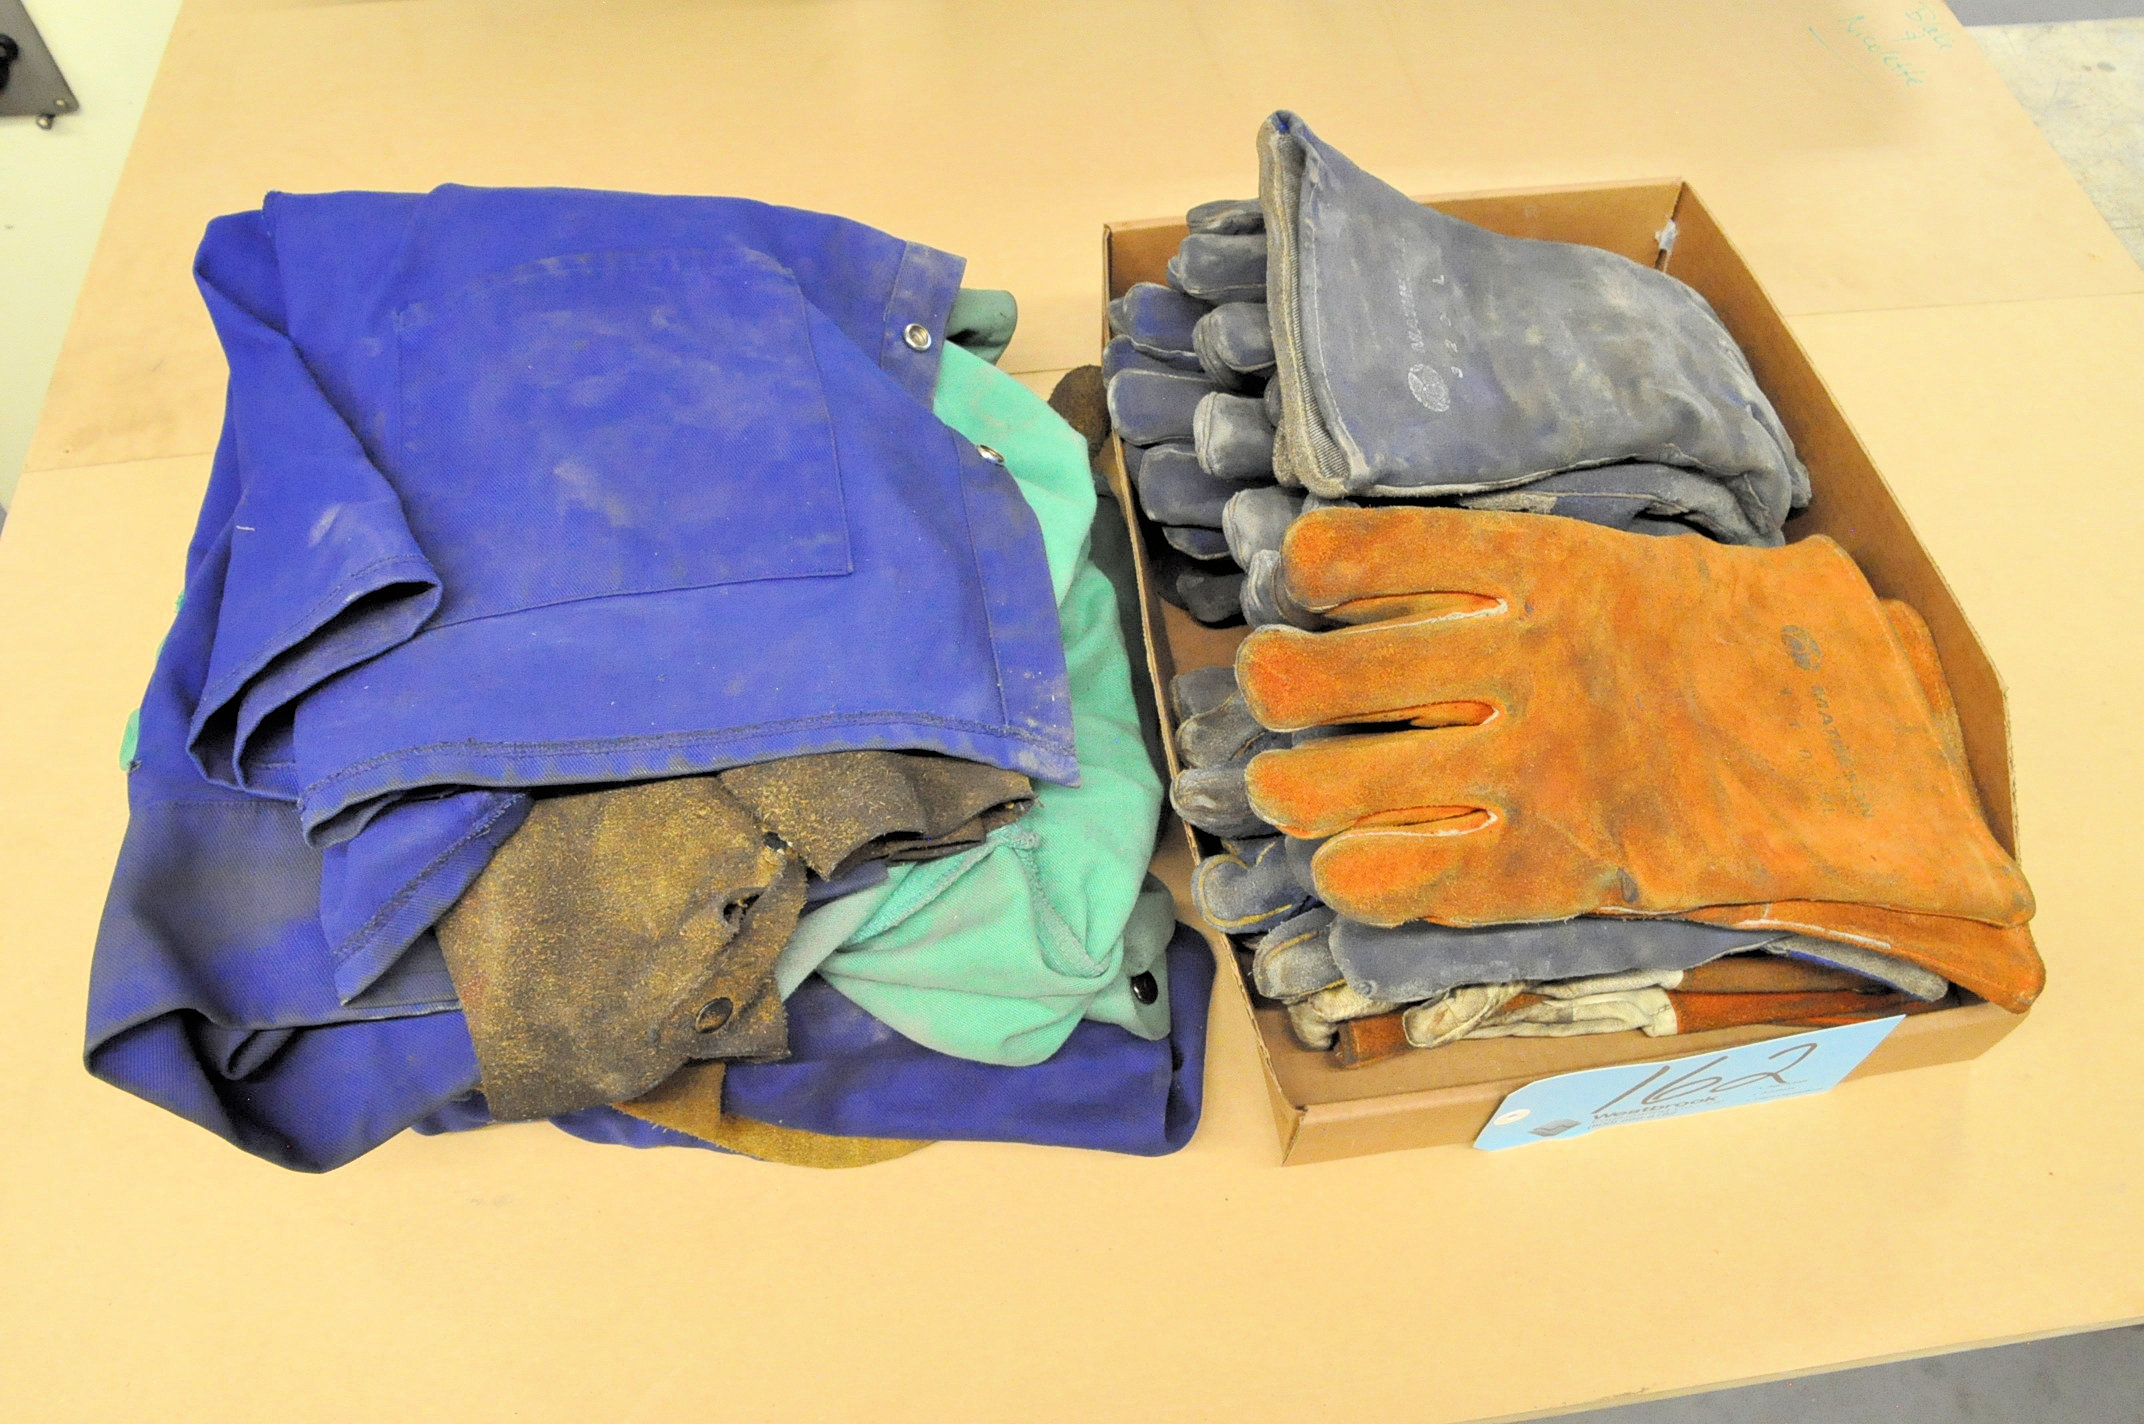 Lot-Welding Apparel and Gloves